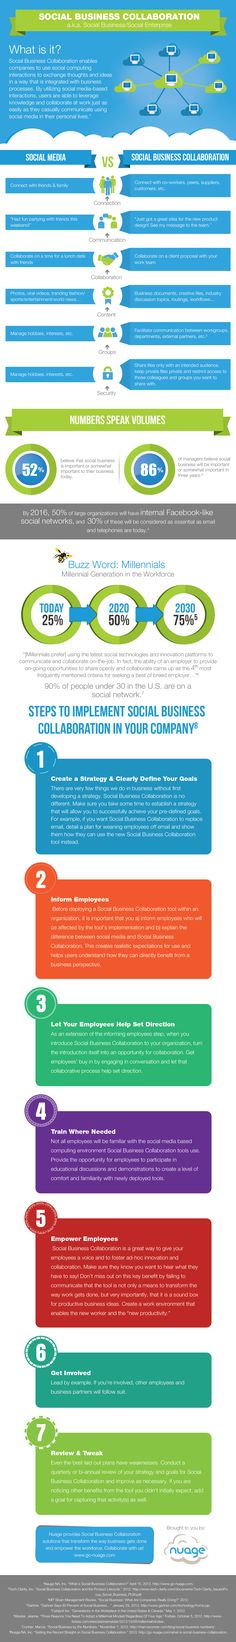 Infographic: 86% of managers say social biz will be important in 2015